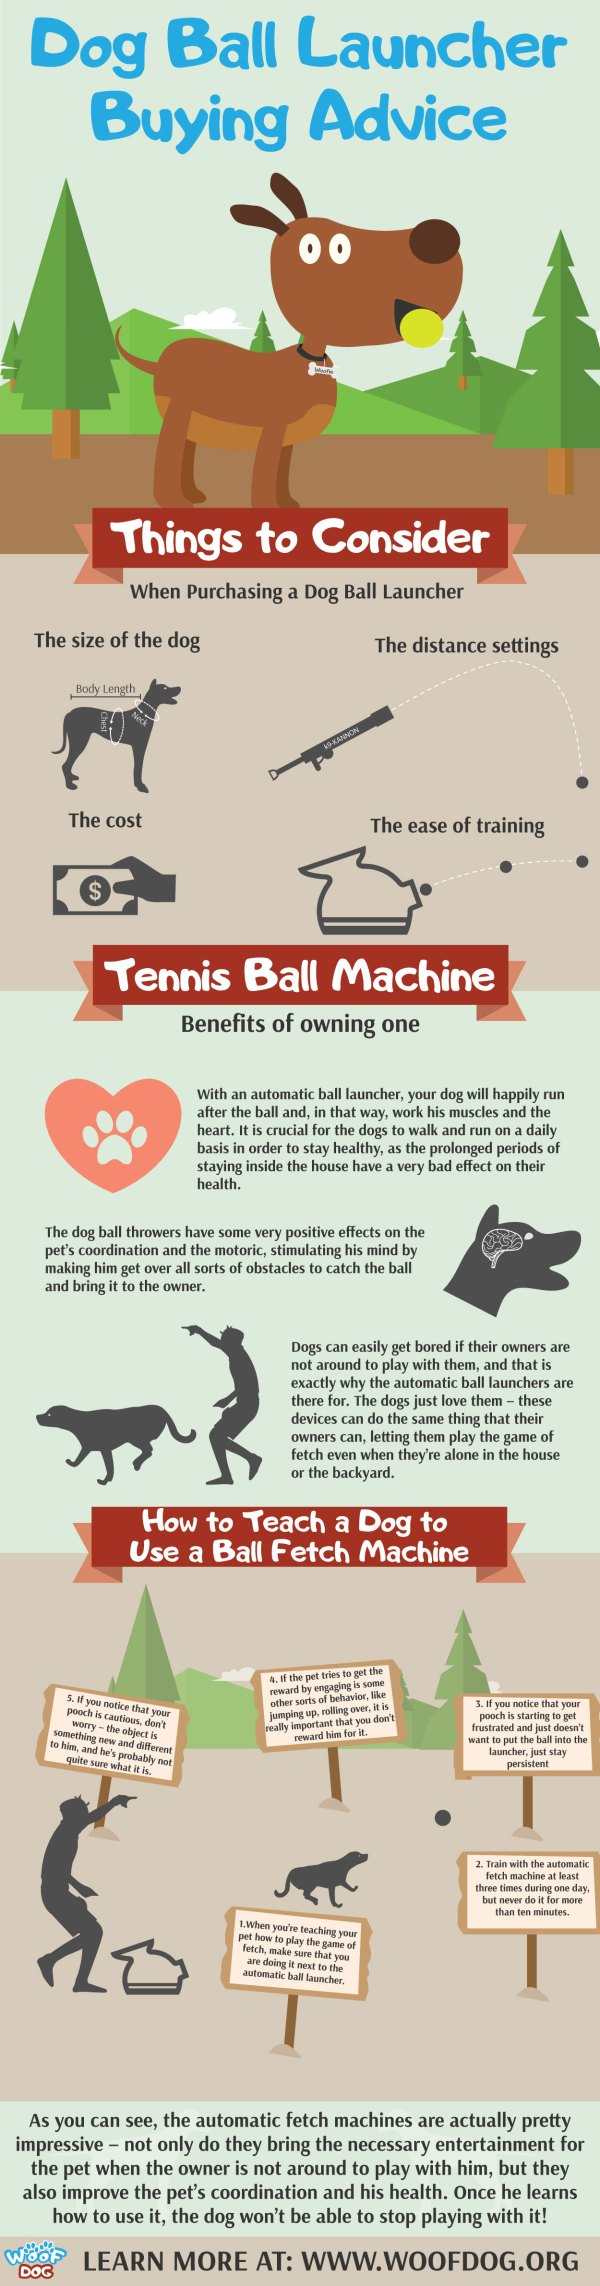 Woof-Dog-Ball-Thrower-Buying-Guide-Infographic